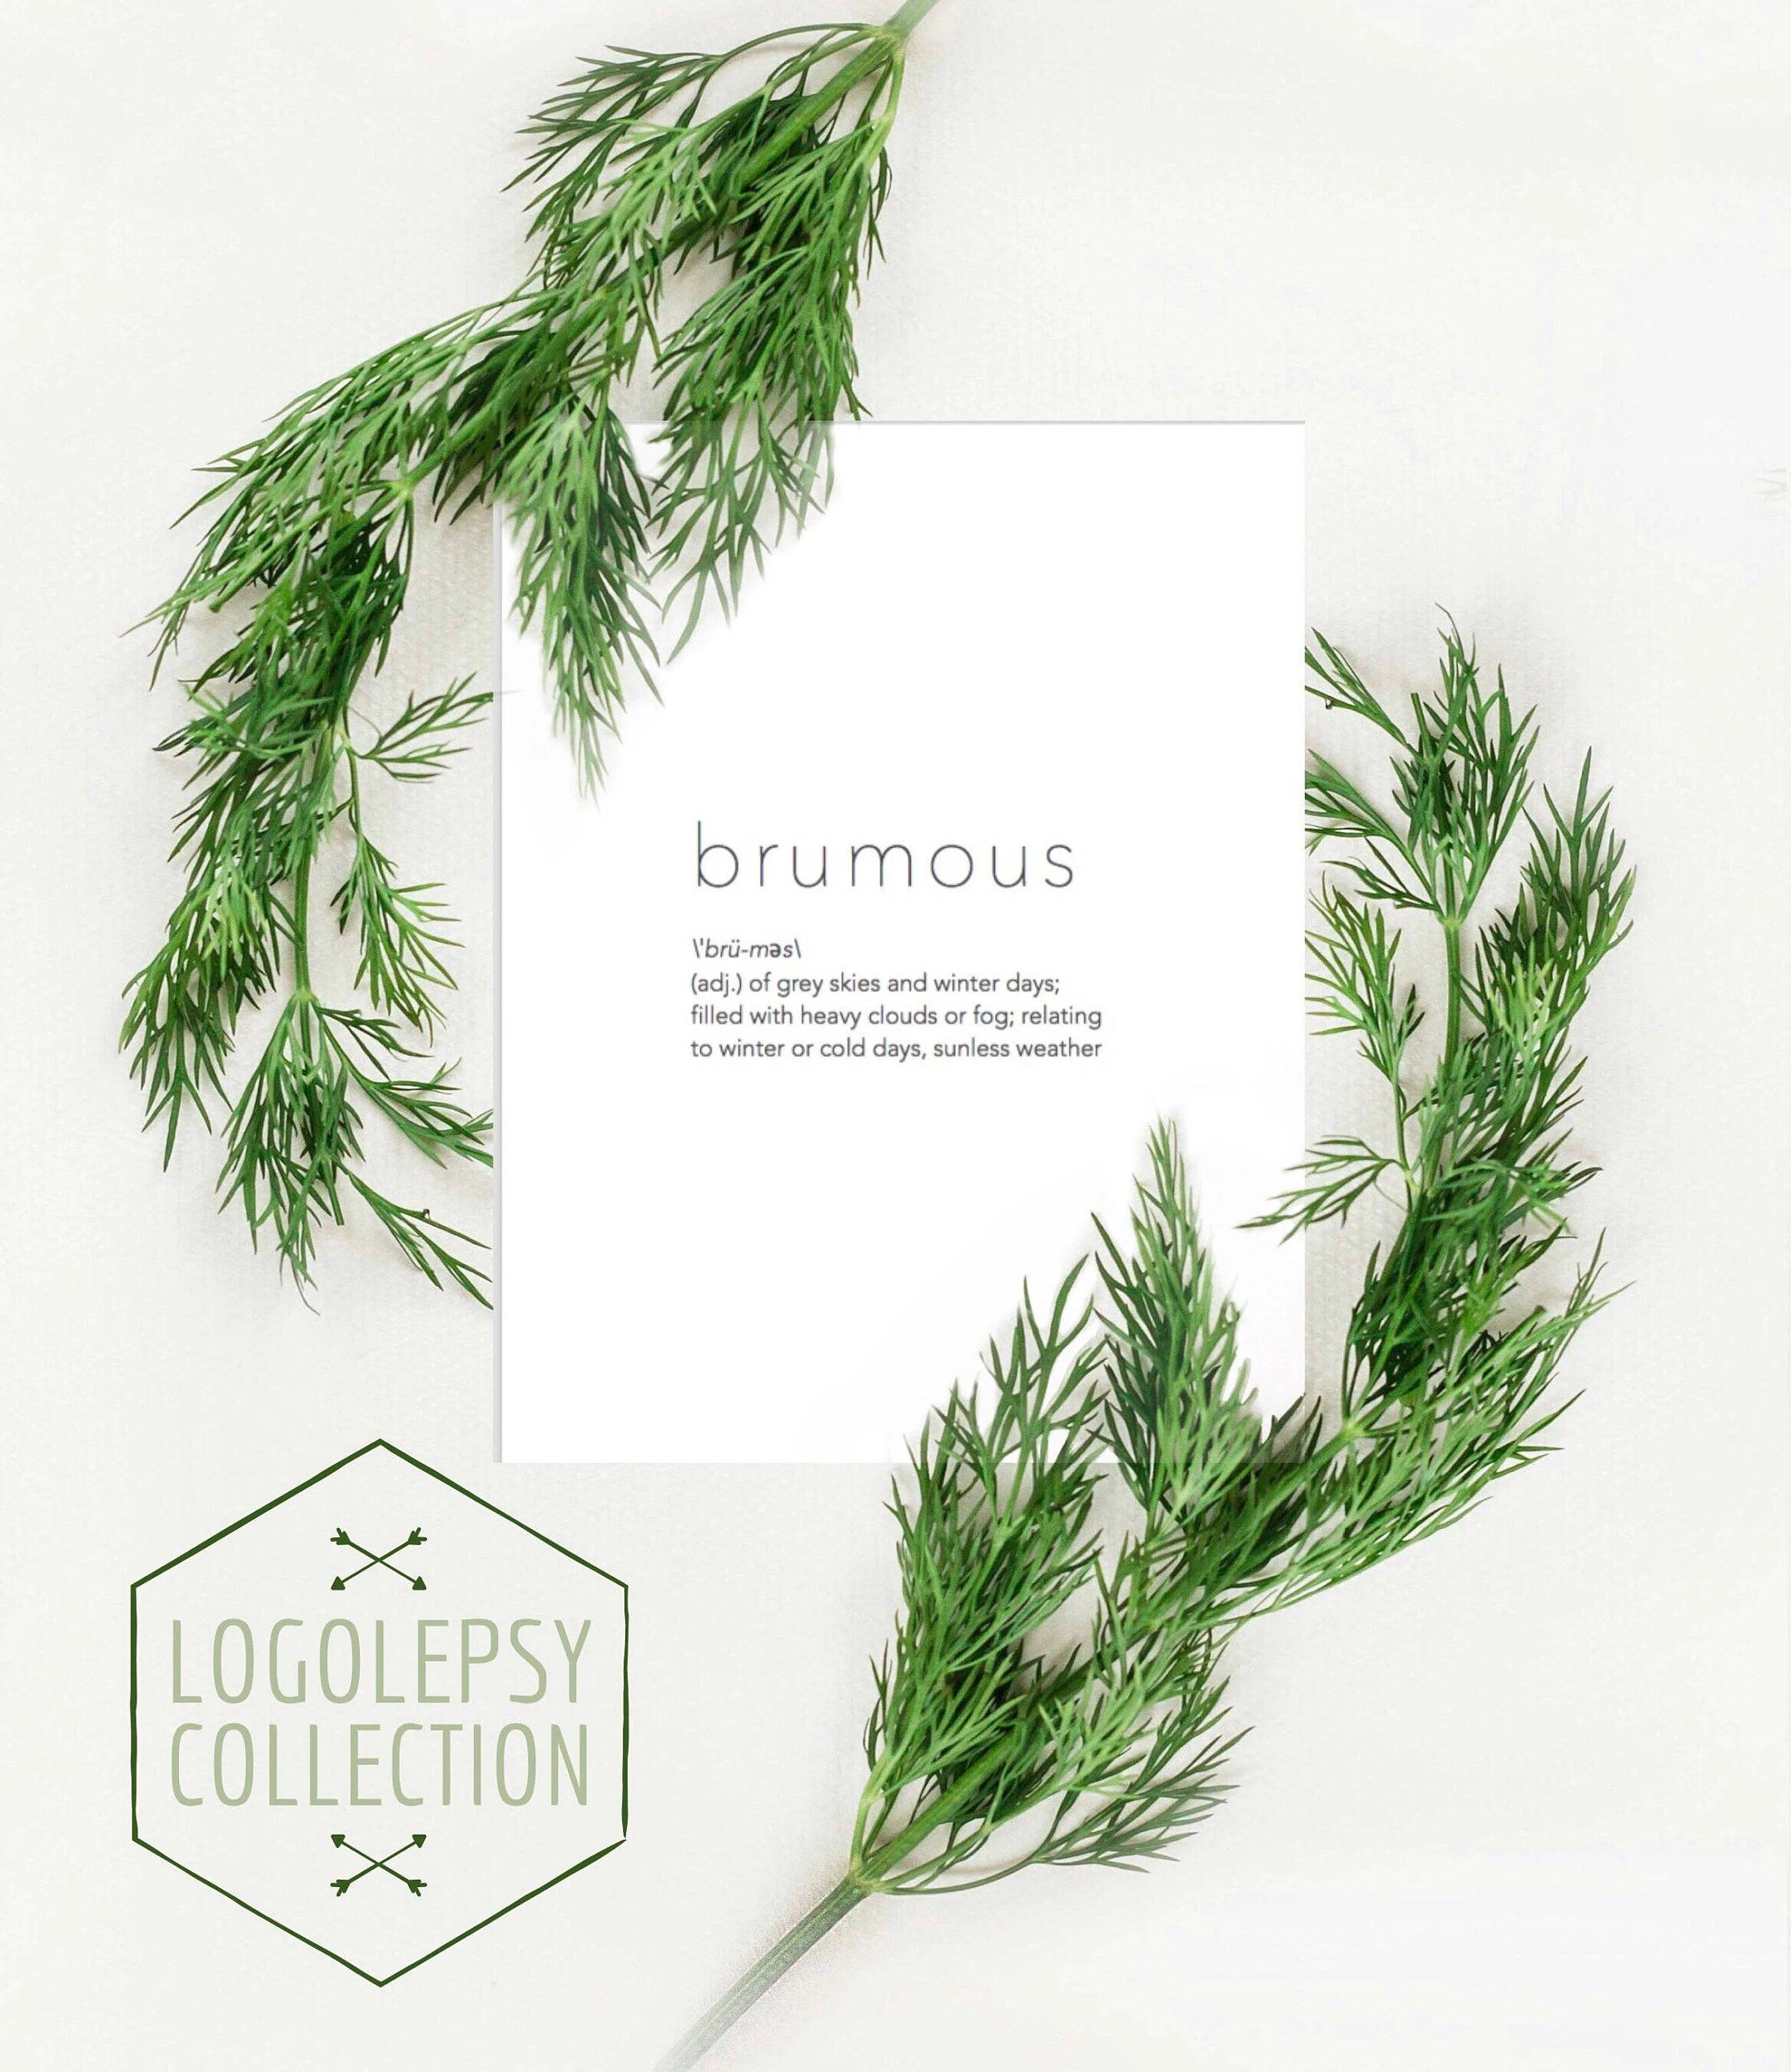 Brumous word definition PRINTABLE art Logolepsy Collection Etsy